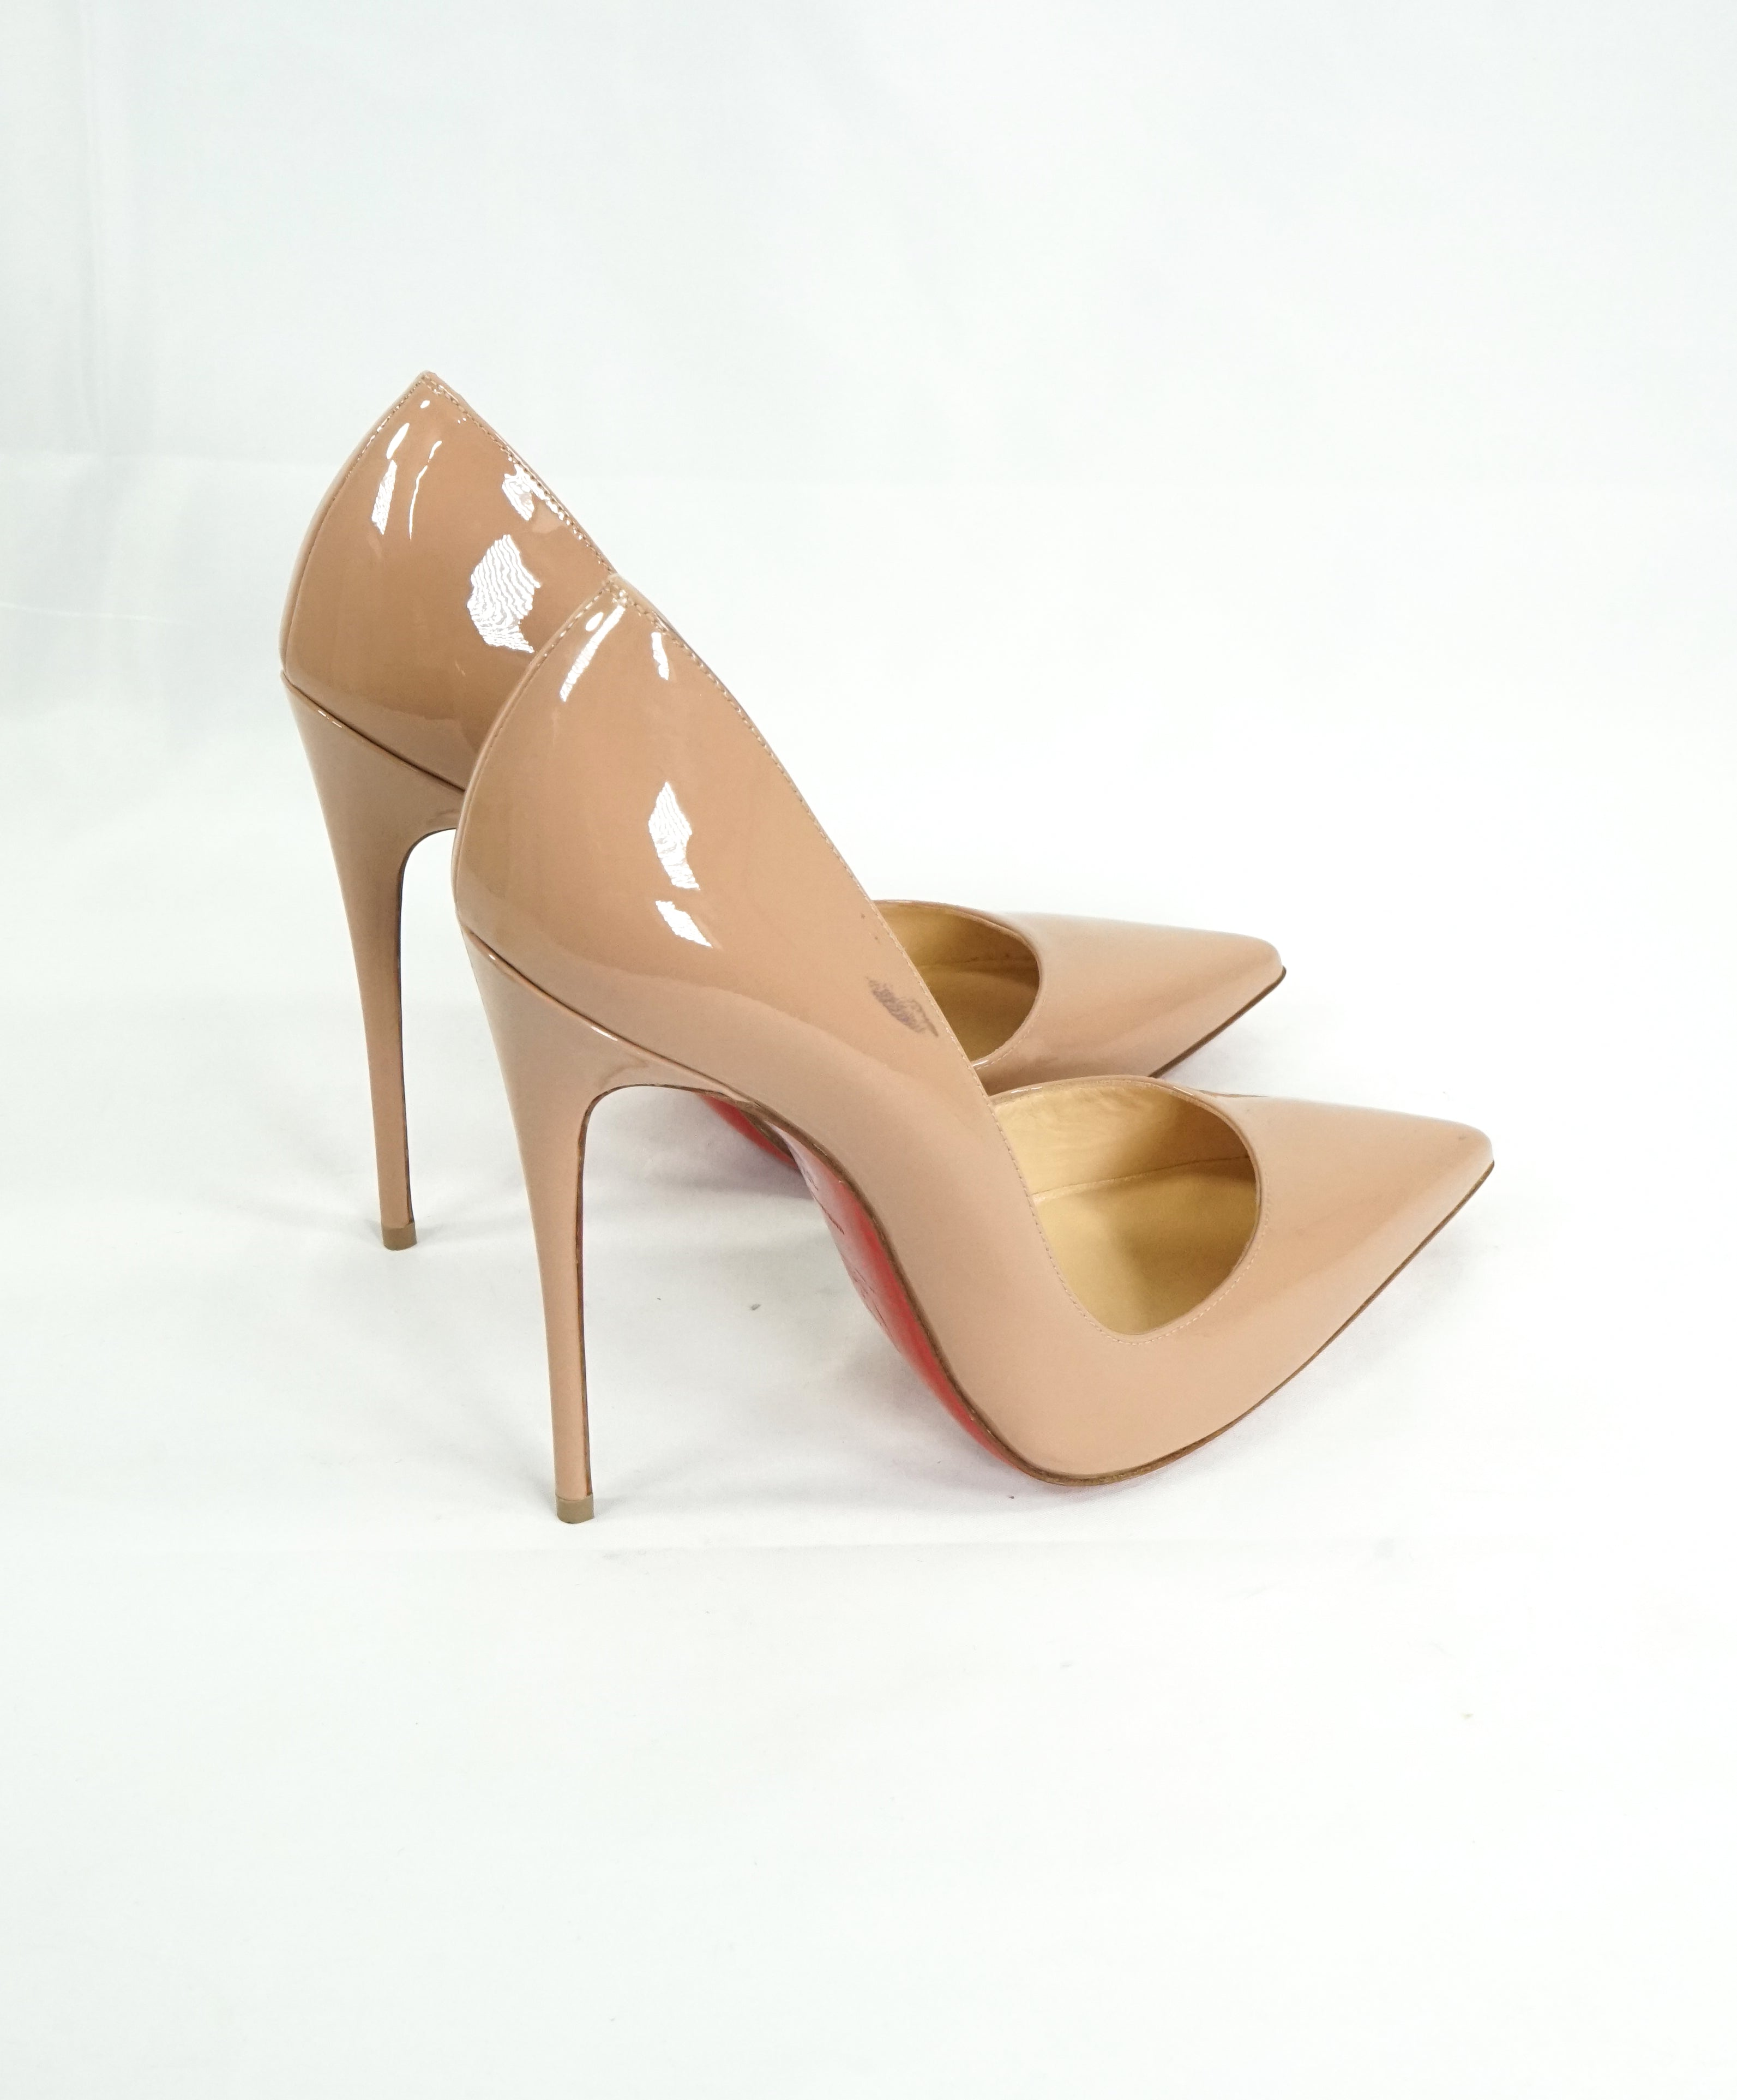 "CHRISTIAN LOUBOUTIN - ""So Kate 120"" Nude Patent Leather Pumps - R-39.5 L-40"